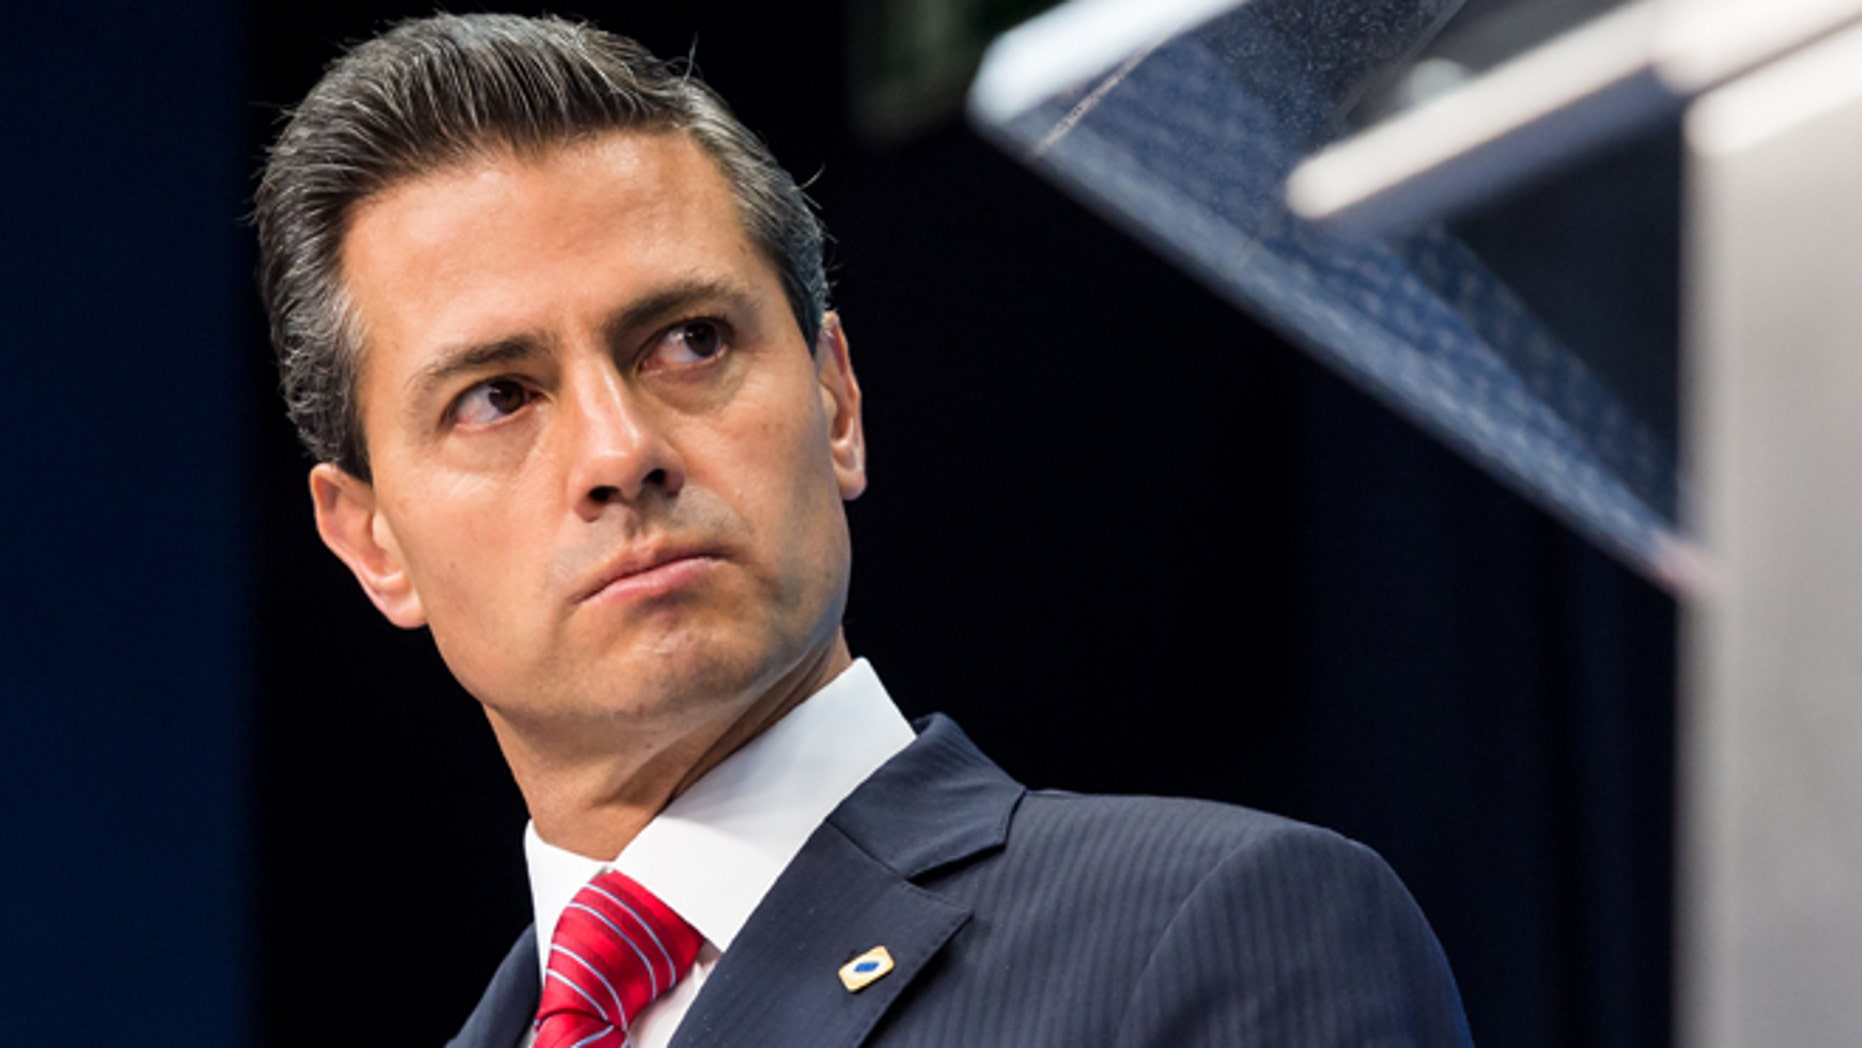 FILE - In this June 12, 2015, file photo, Mexico's President Enrique Pena Nieto addresses the media during an EU Mexico summit at the EU Council building in Brussels. Pena Nieto has been released from the hospital on Sunday, June 28, after undergoing surgery to remove his gallbladder at Mexico's Central Military Hospital. (AP Photo/Geert Vanden Wijngaert, File)